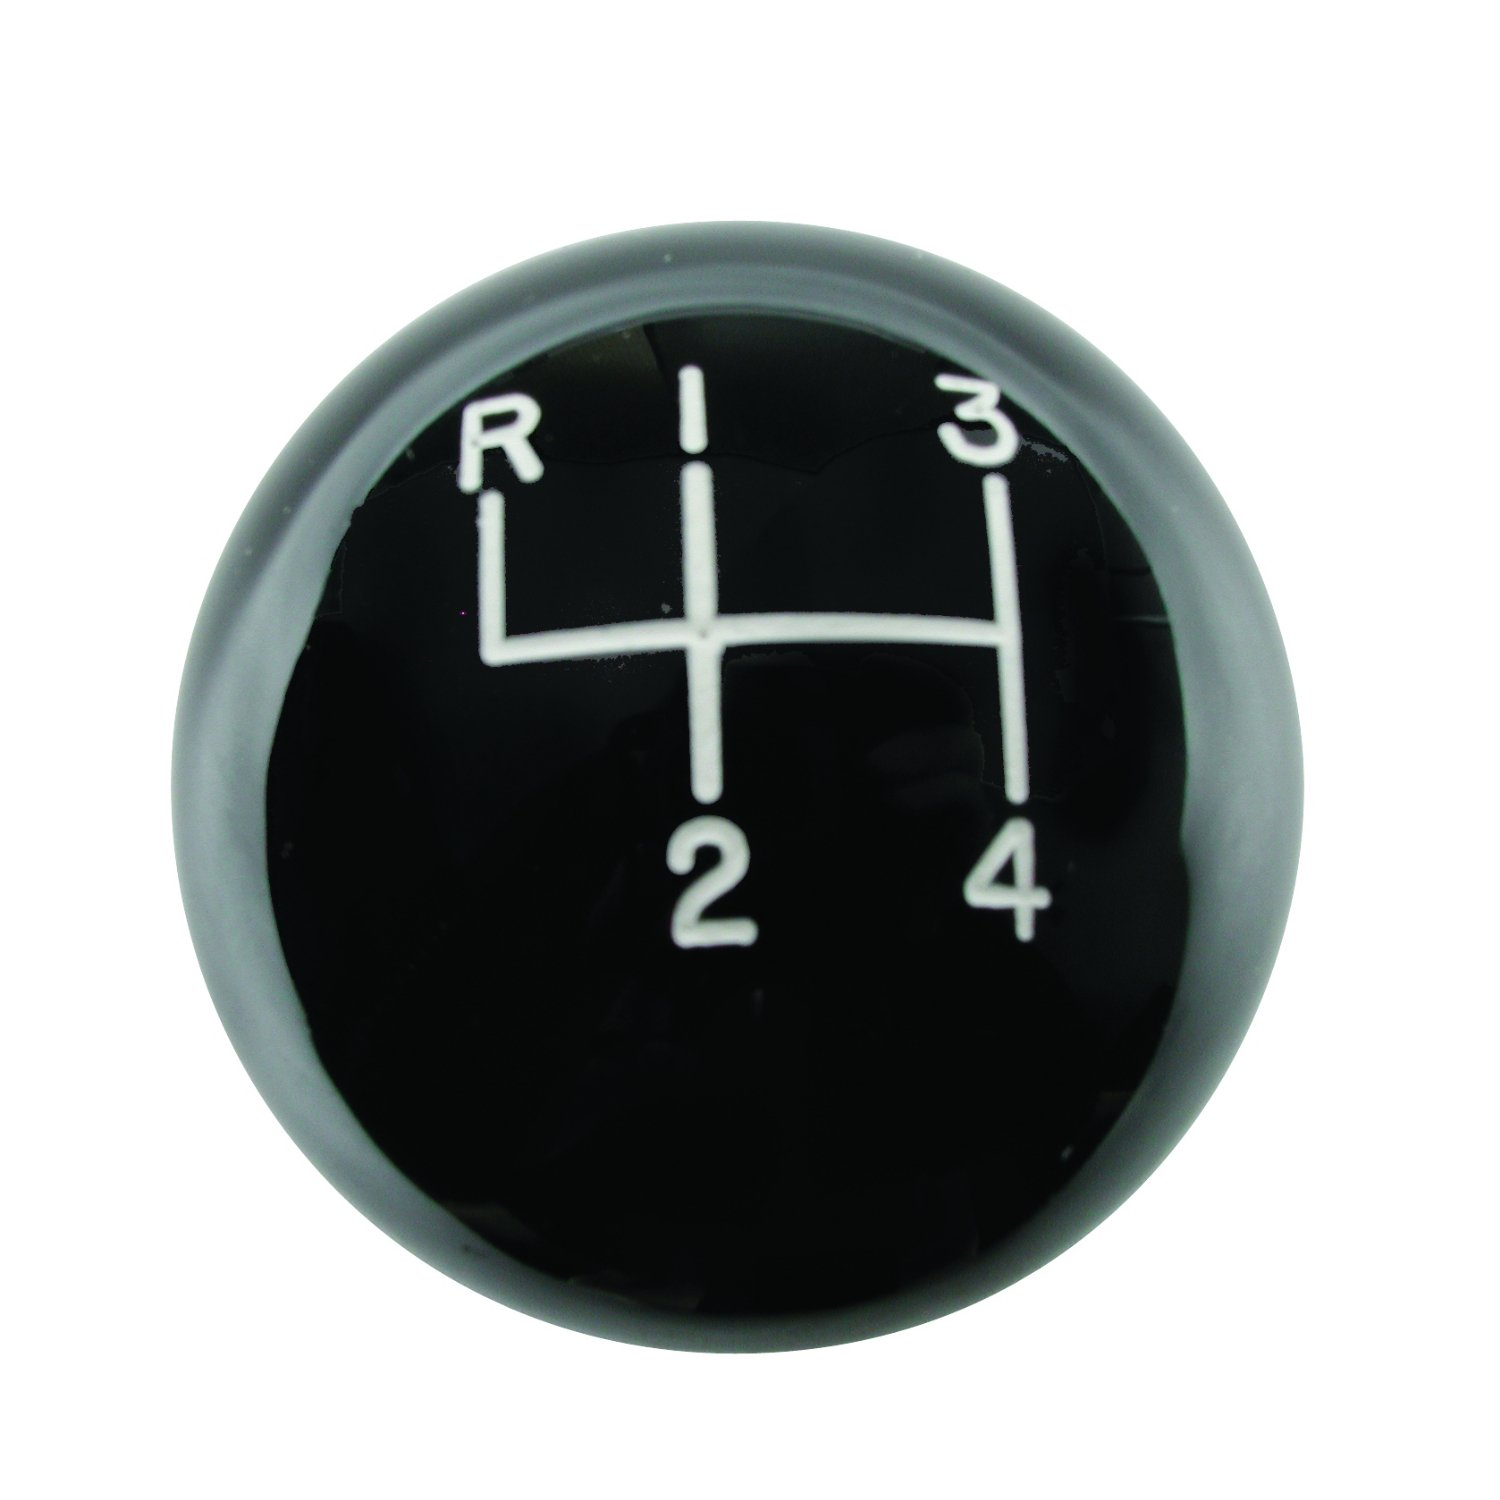 Hurst 1630103 Shift Knob - Black 4 Speed 3/8-16 Threads - Upper/left Reverse Pattern Manual Transmission Shift Knob Shift Knob - Black 4 Speed 3/8-16 Threads